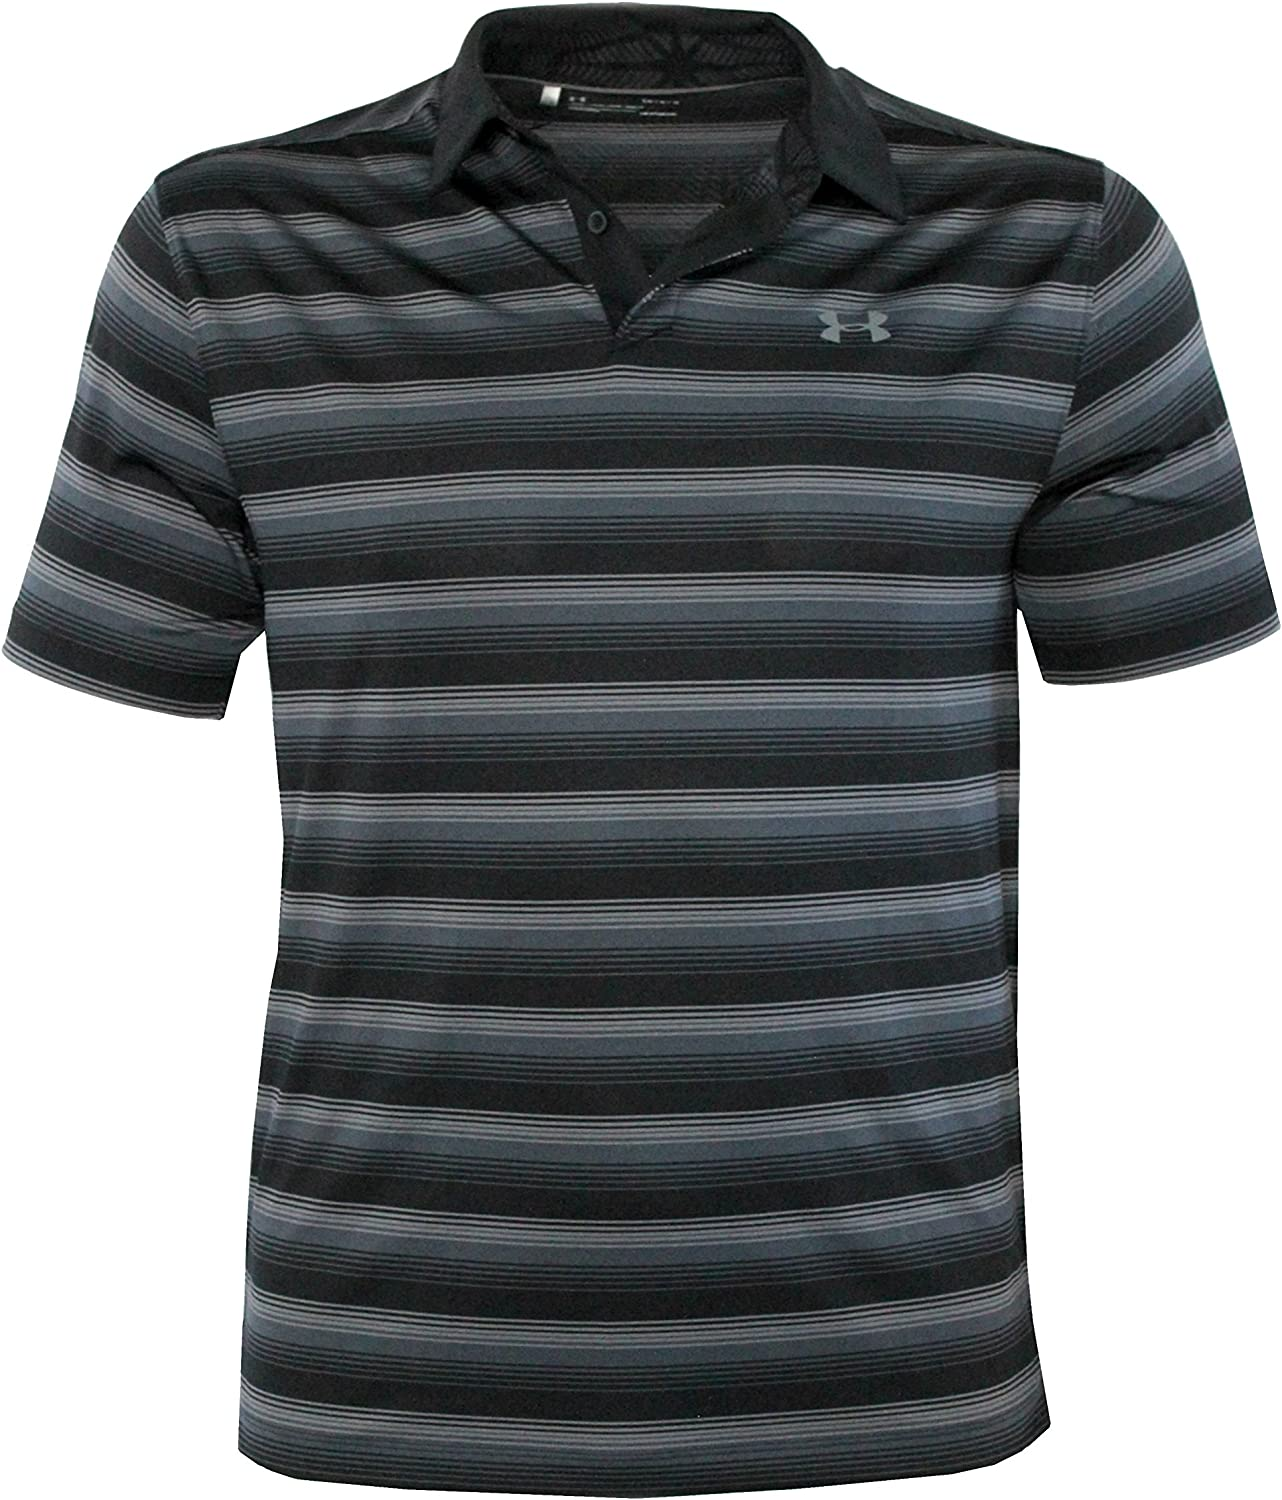 Under Armour Mens Performance Golf Polo CoolSwitch Shirt Striped ...